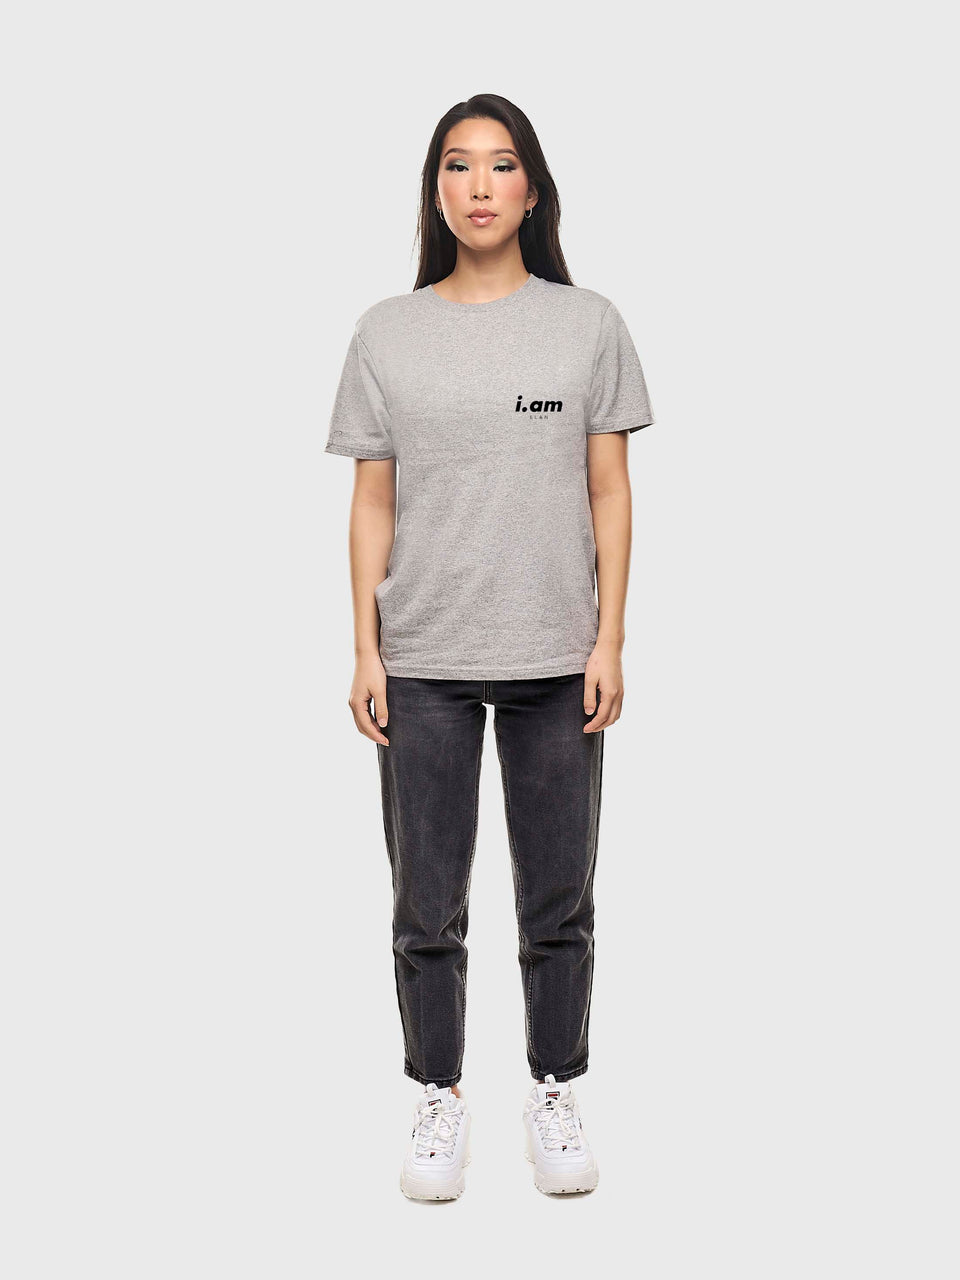 I am who I am - Grey - unisex T